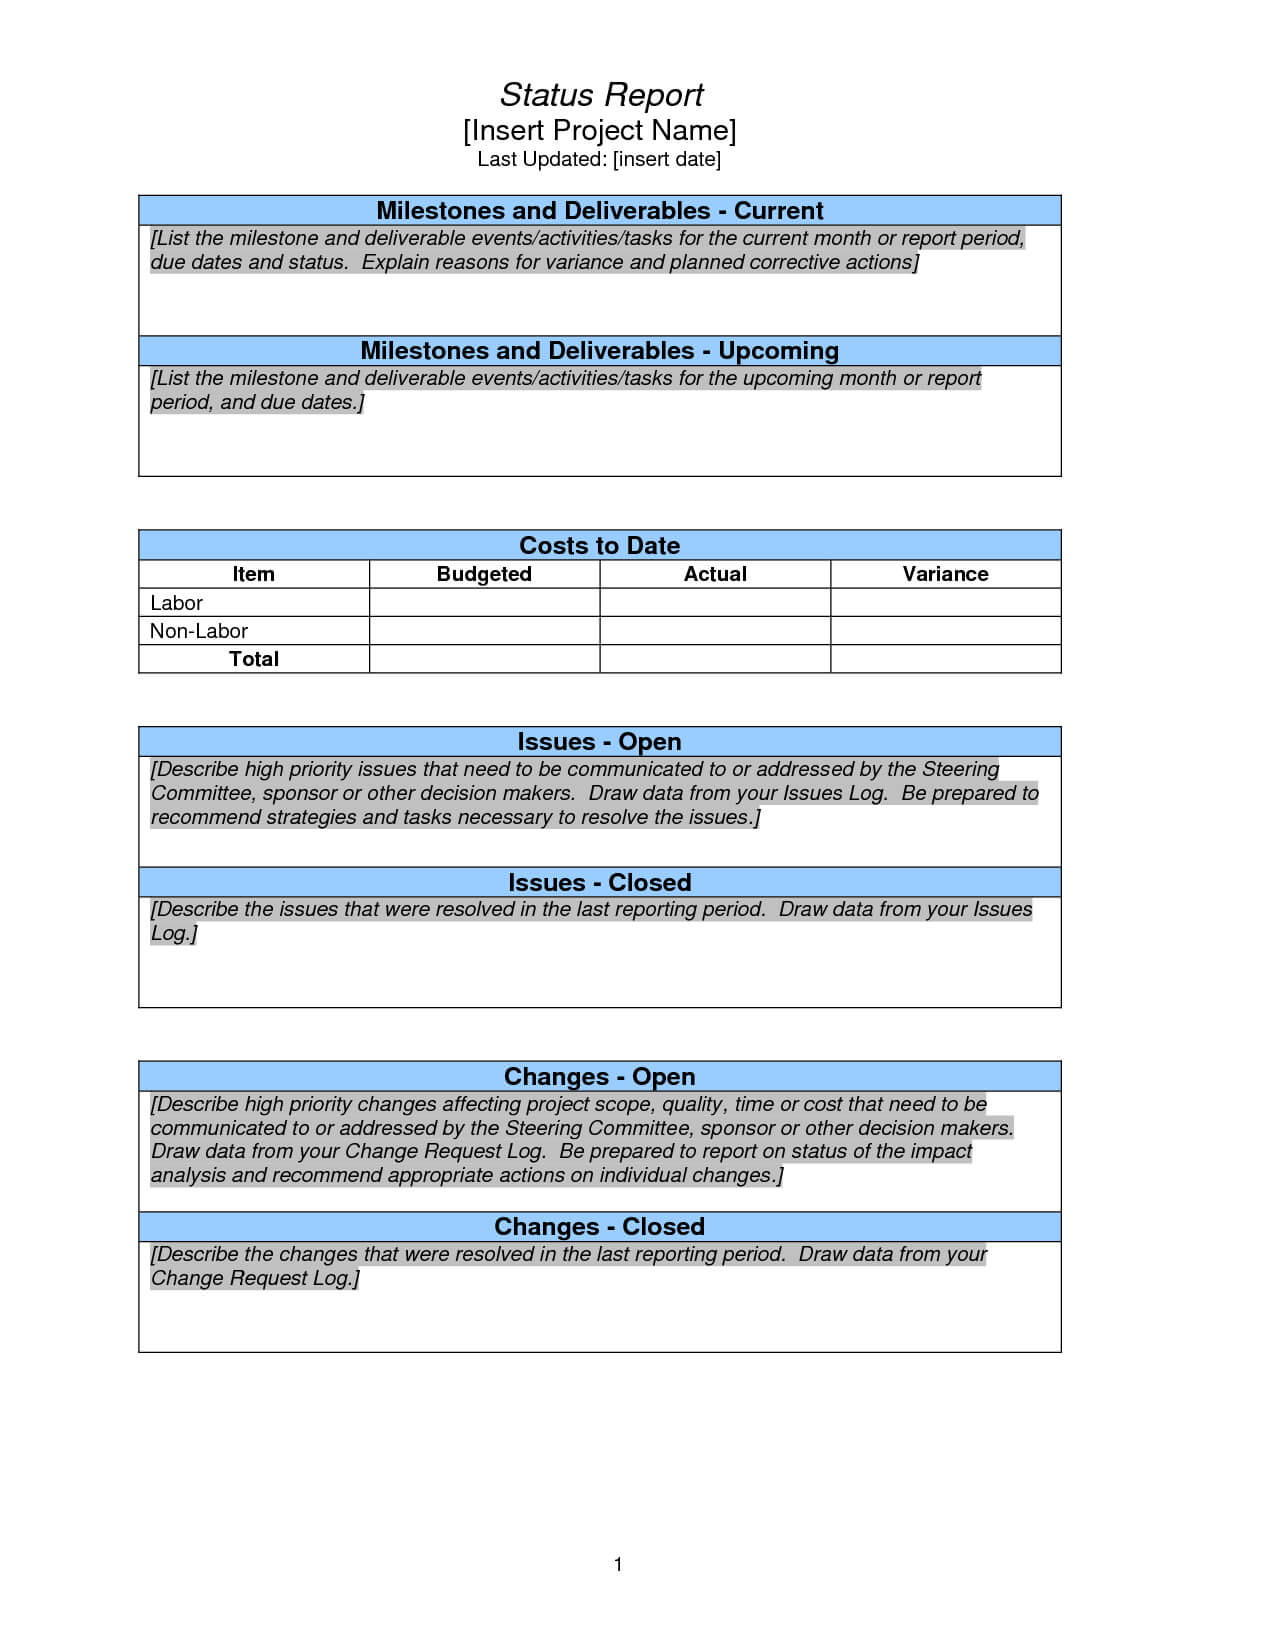 Project Status Report Sample   Project Status Report pertaining to Project Analysis Report Template